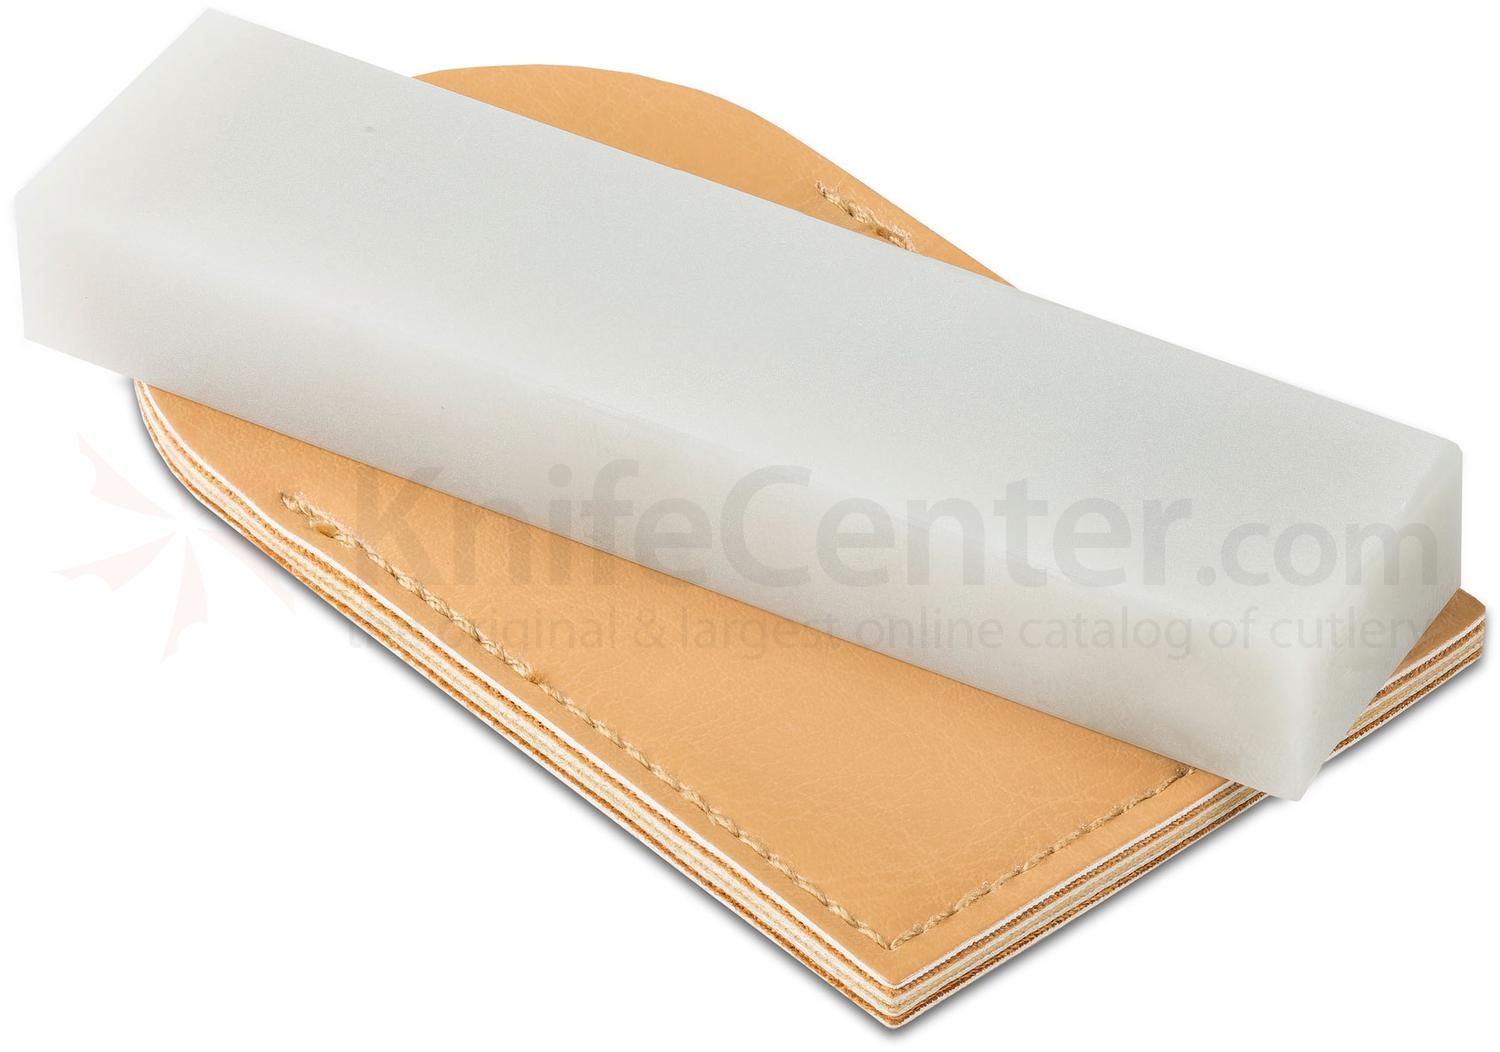 Hall Sharpening Stones 30088 Translucent Arkansas 3